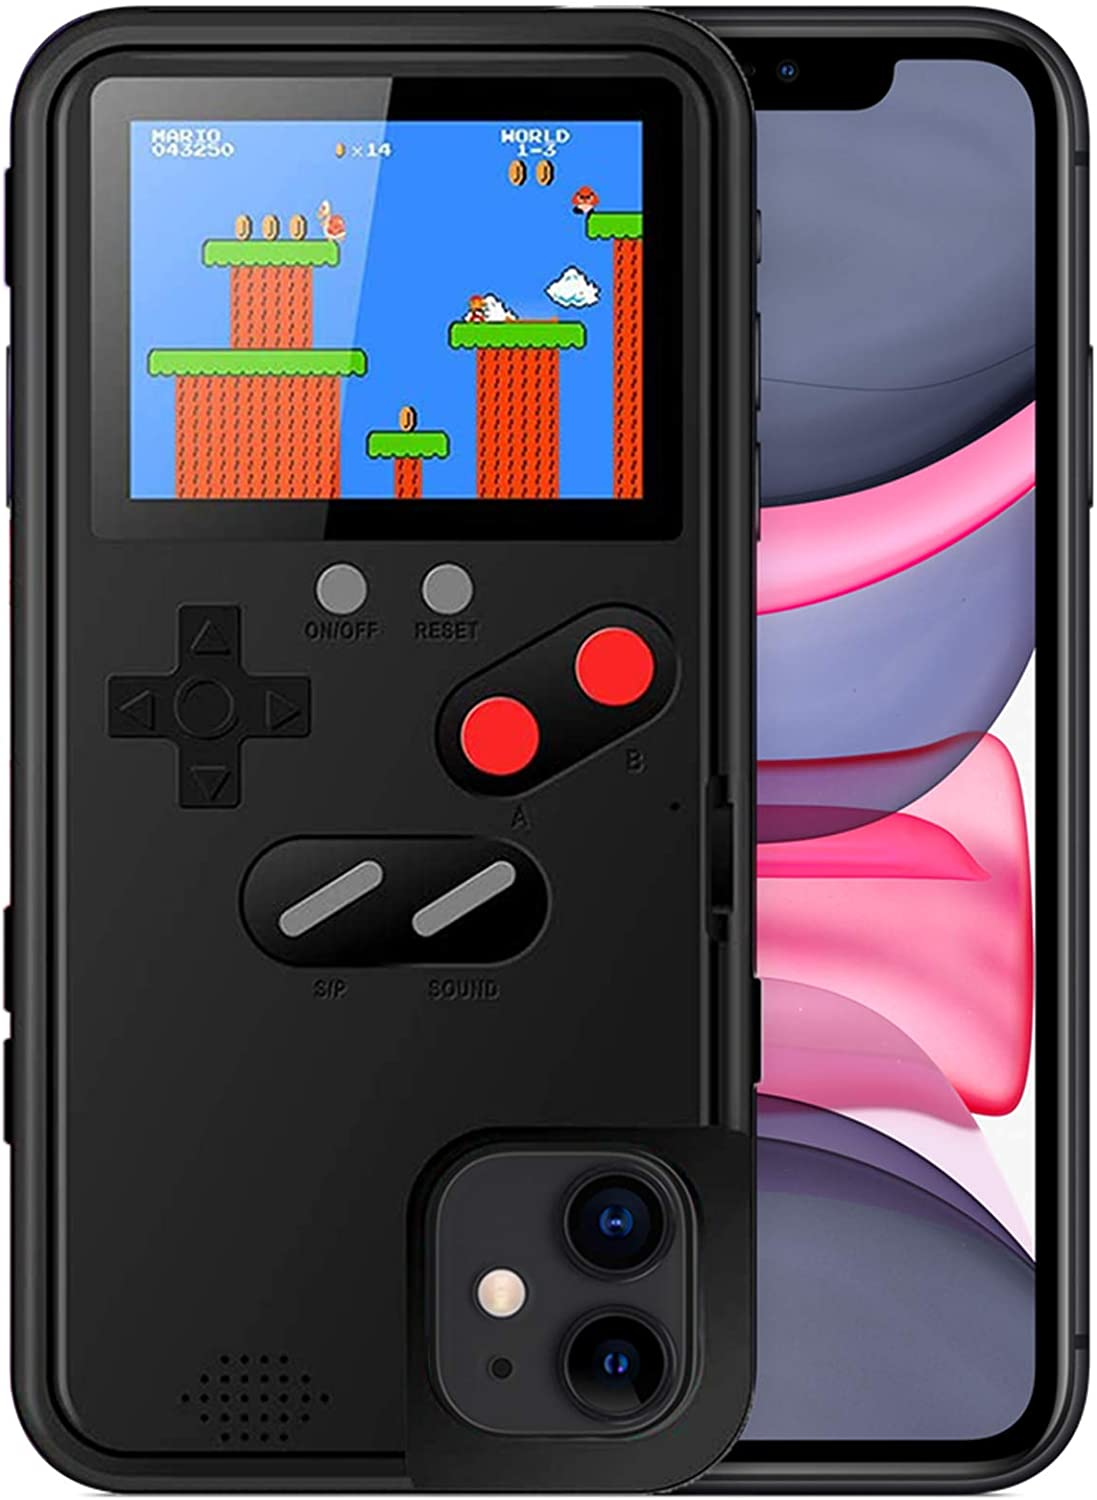 Playable Gameboy Case for iPhone 6P/6SP/7P/8P, Chu9 Retro 3D Shockproof Gameboy Cover Case with 36 Classic Games, Handheld Color Screen Video Game Console Case for iPhone (Black,iPhone 6P/6SP/7P/8P)